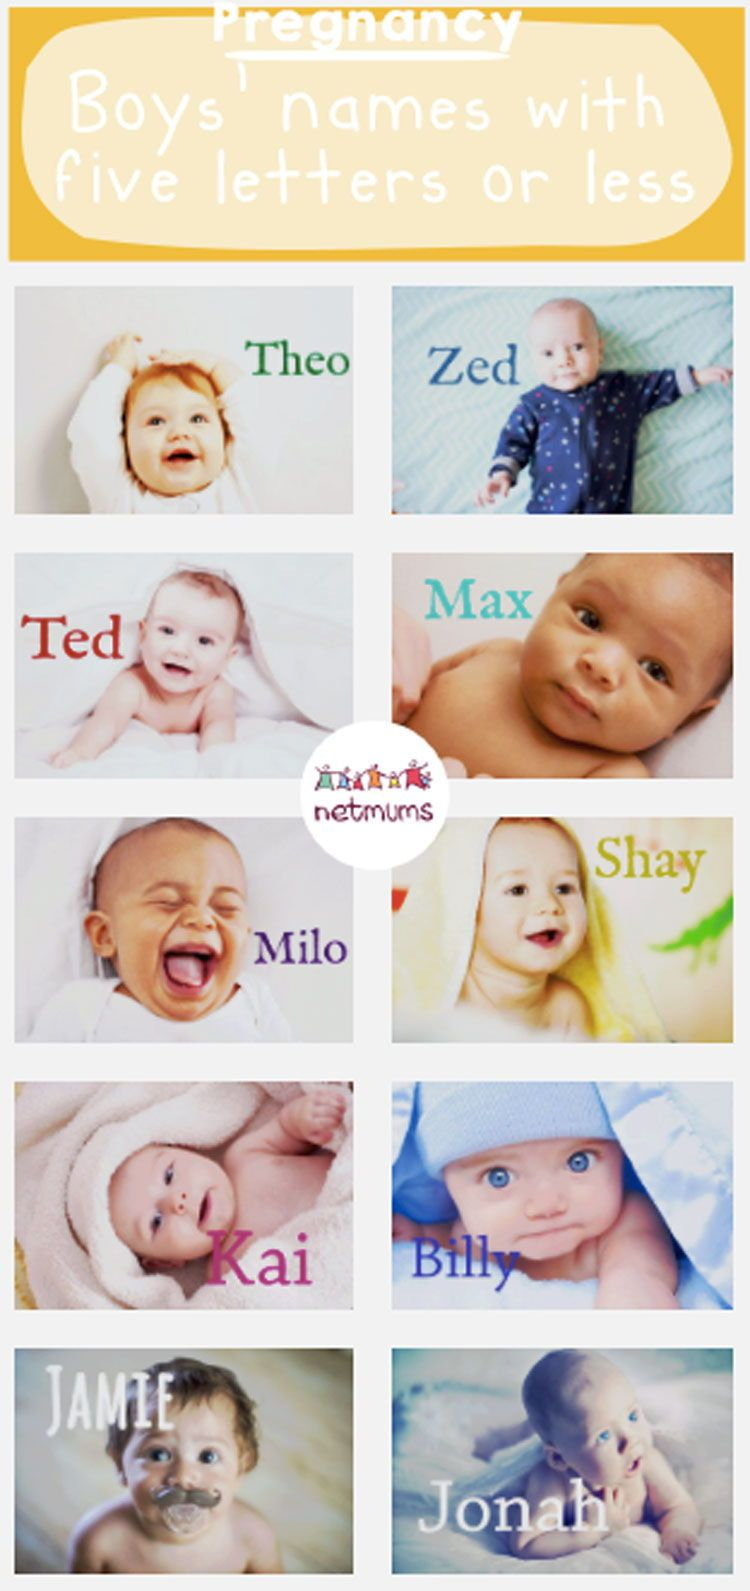 Italian Boy Name: 15 Short And Sweet Baby Boy Names